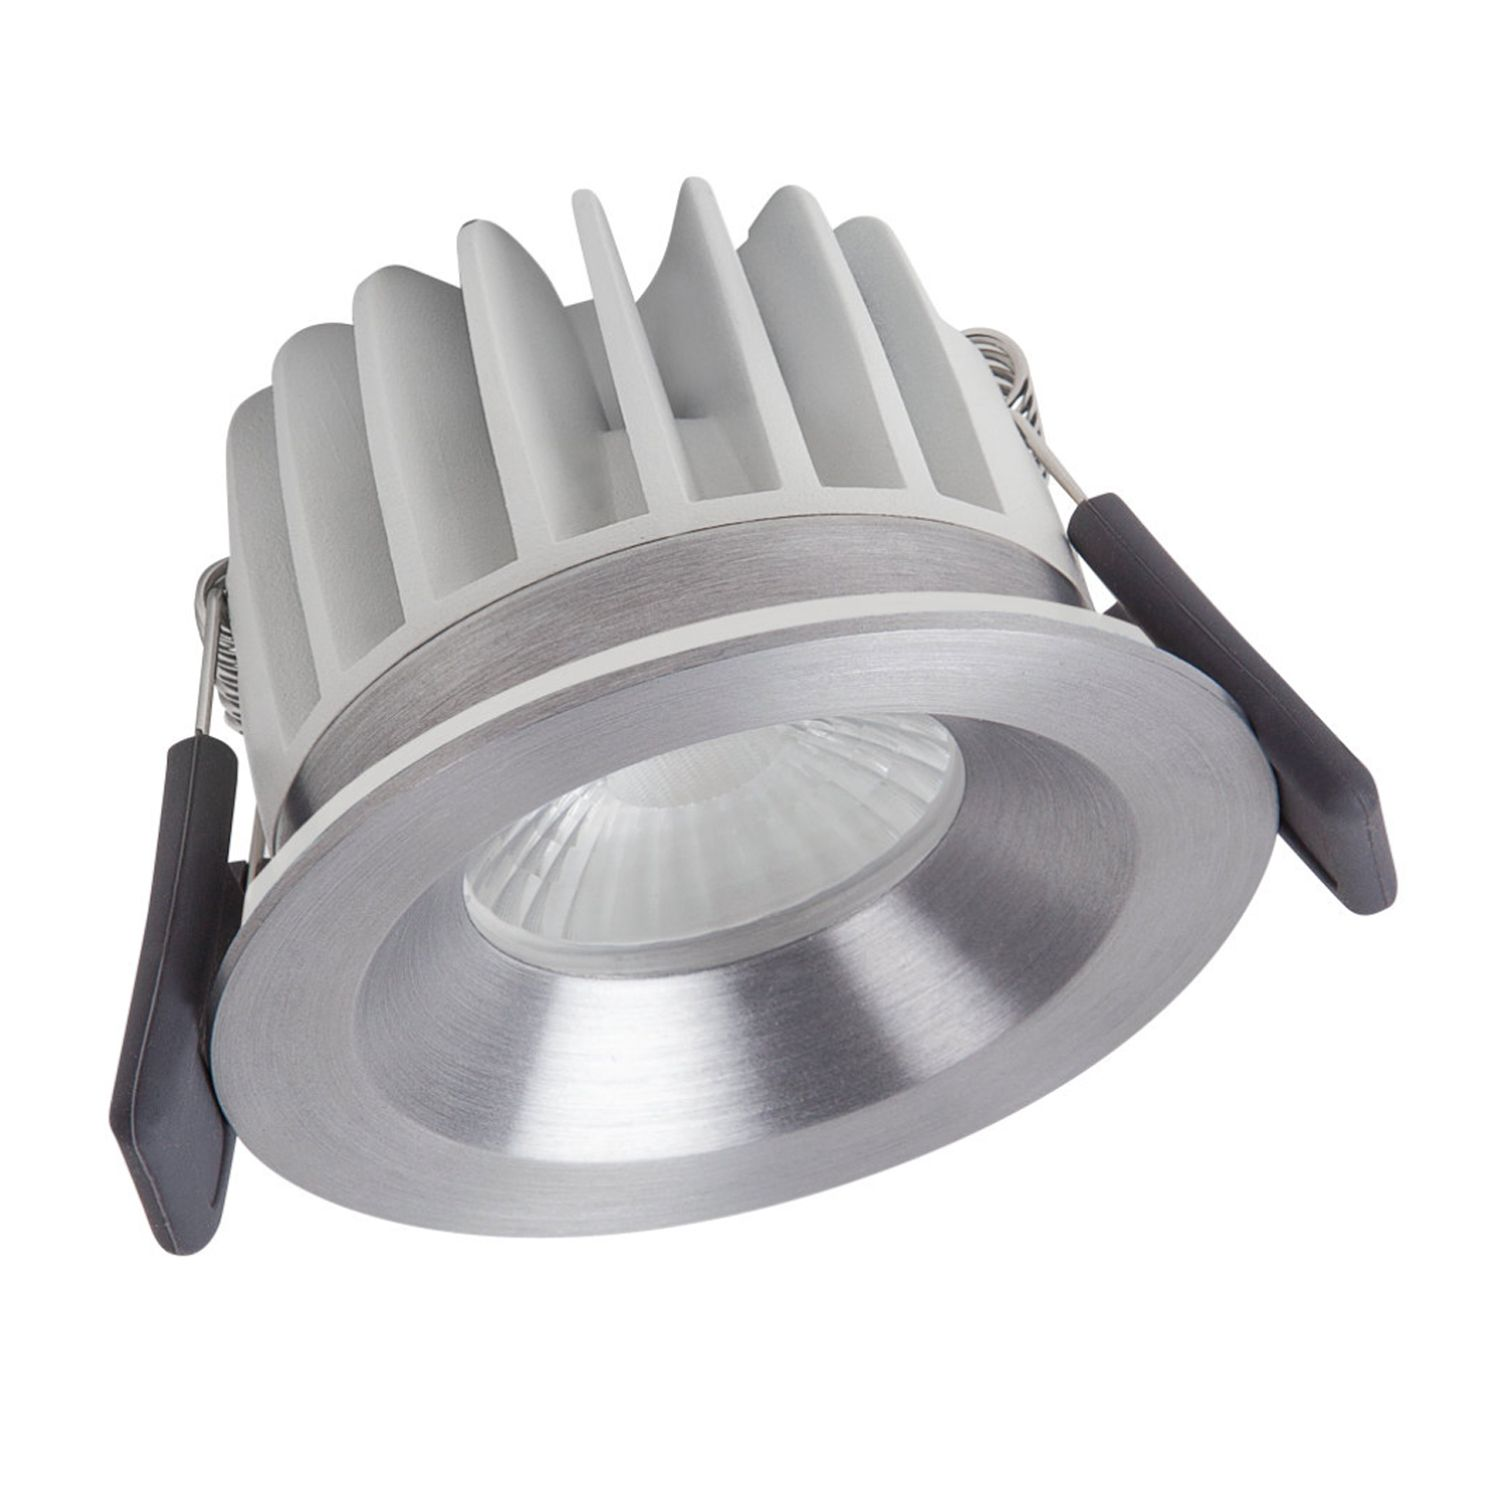 Ledvance LED Downlight SPOT Round FIX 8W 3000K IP44 | Warm White - Dimmable